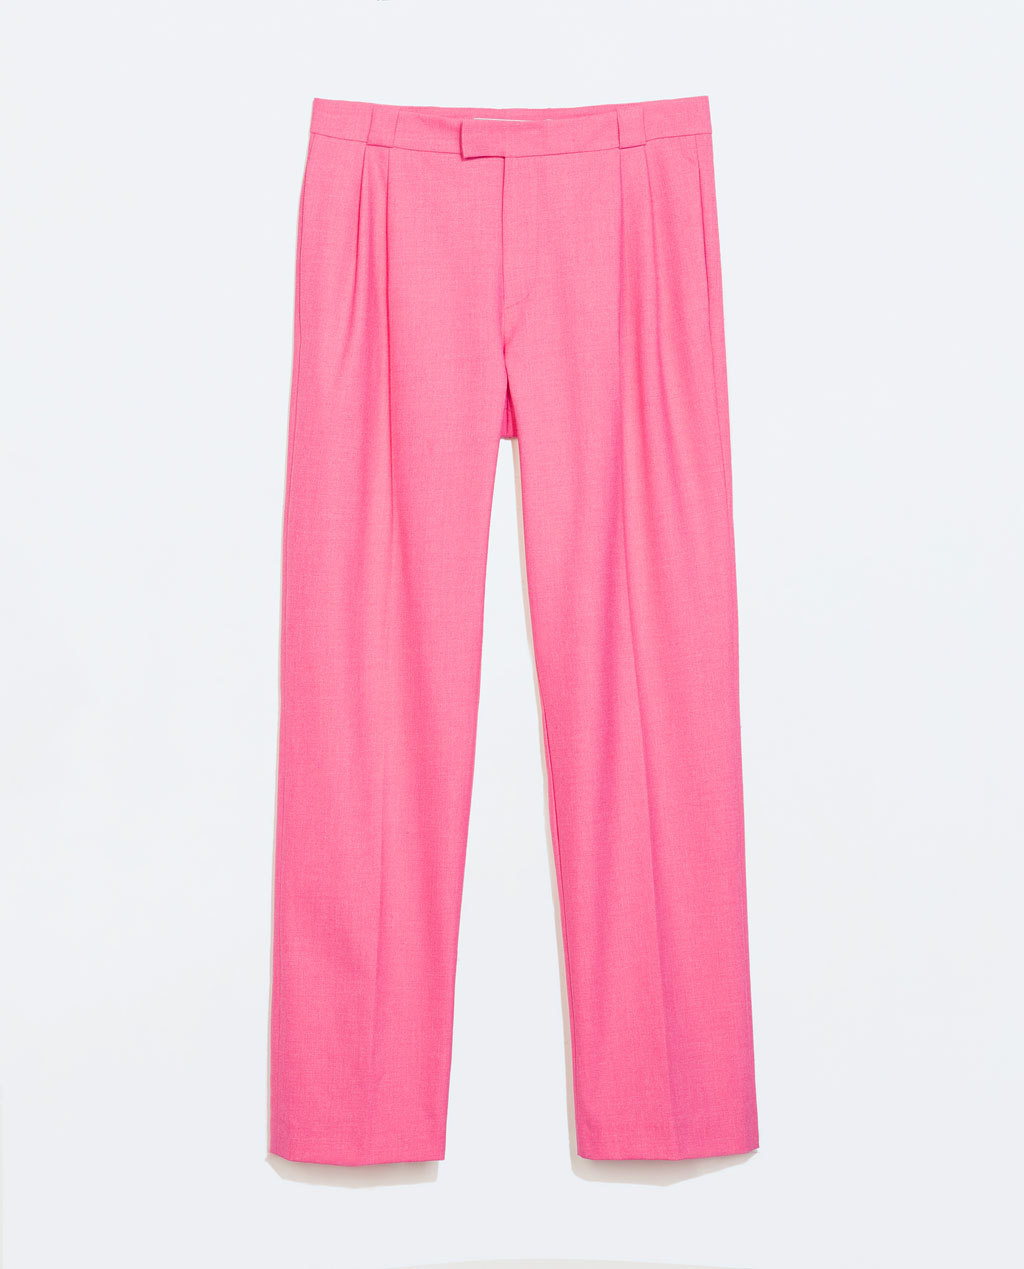 Wide Leg Trousers - length: standard; pattern: plain; pocket detail: small back pockets, pockets at the sides; waist: mid/regular rise; predominant colour: pink; occasions: casual, creative work; fibres: polyester/polyamide - stretch; waist detail: feature waist detail; fit: wide leg; pattern type: fabric; texture group: woven light midweight; style: standard; season: a/w 2014